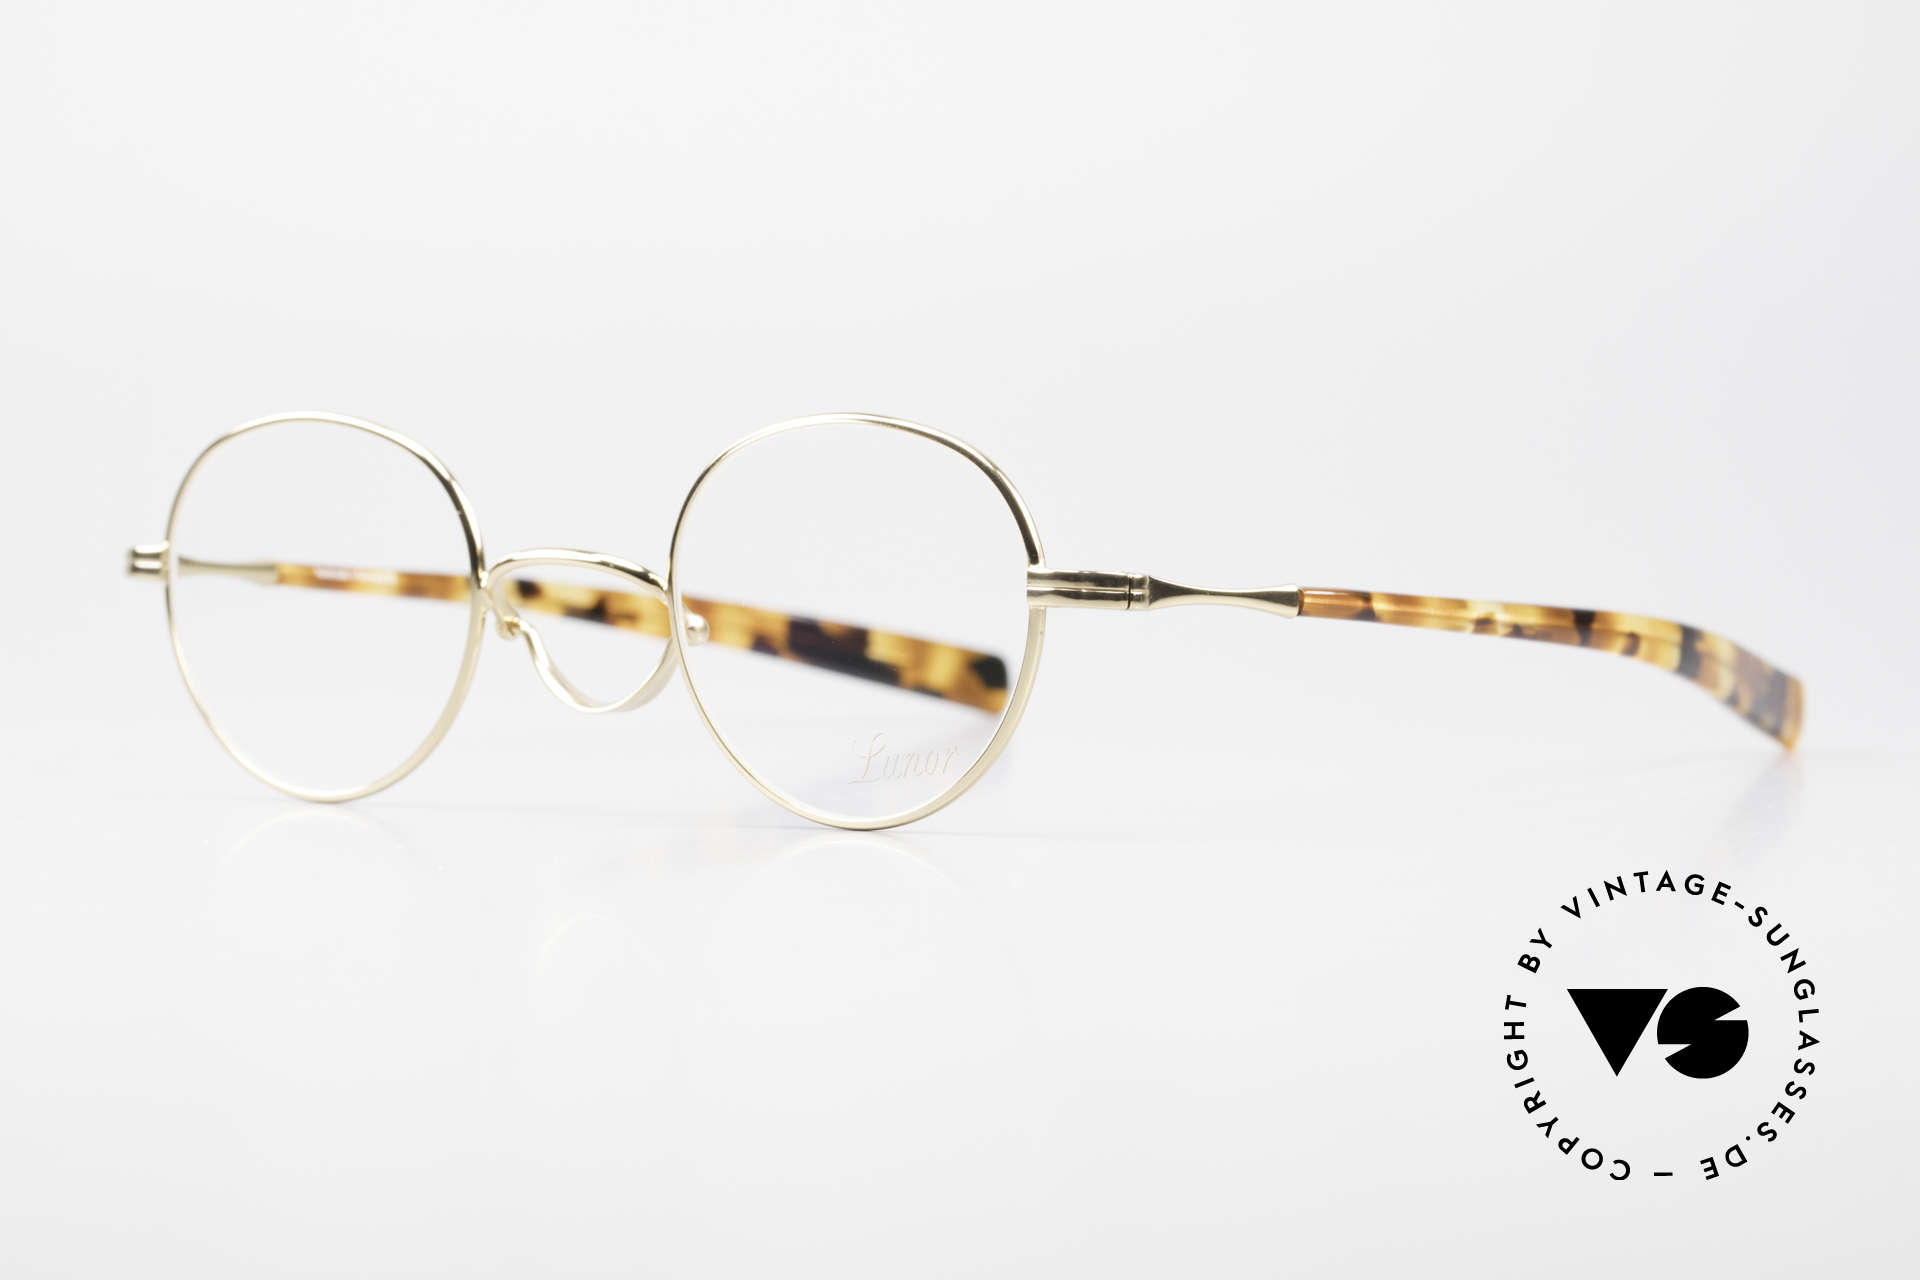 Lunor Swing A 32 Panto Swing Bridge Gold Plated, handmade in Germany, with acetate temples; vertu!, Made for Men and Women